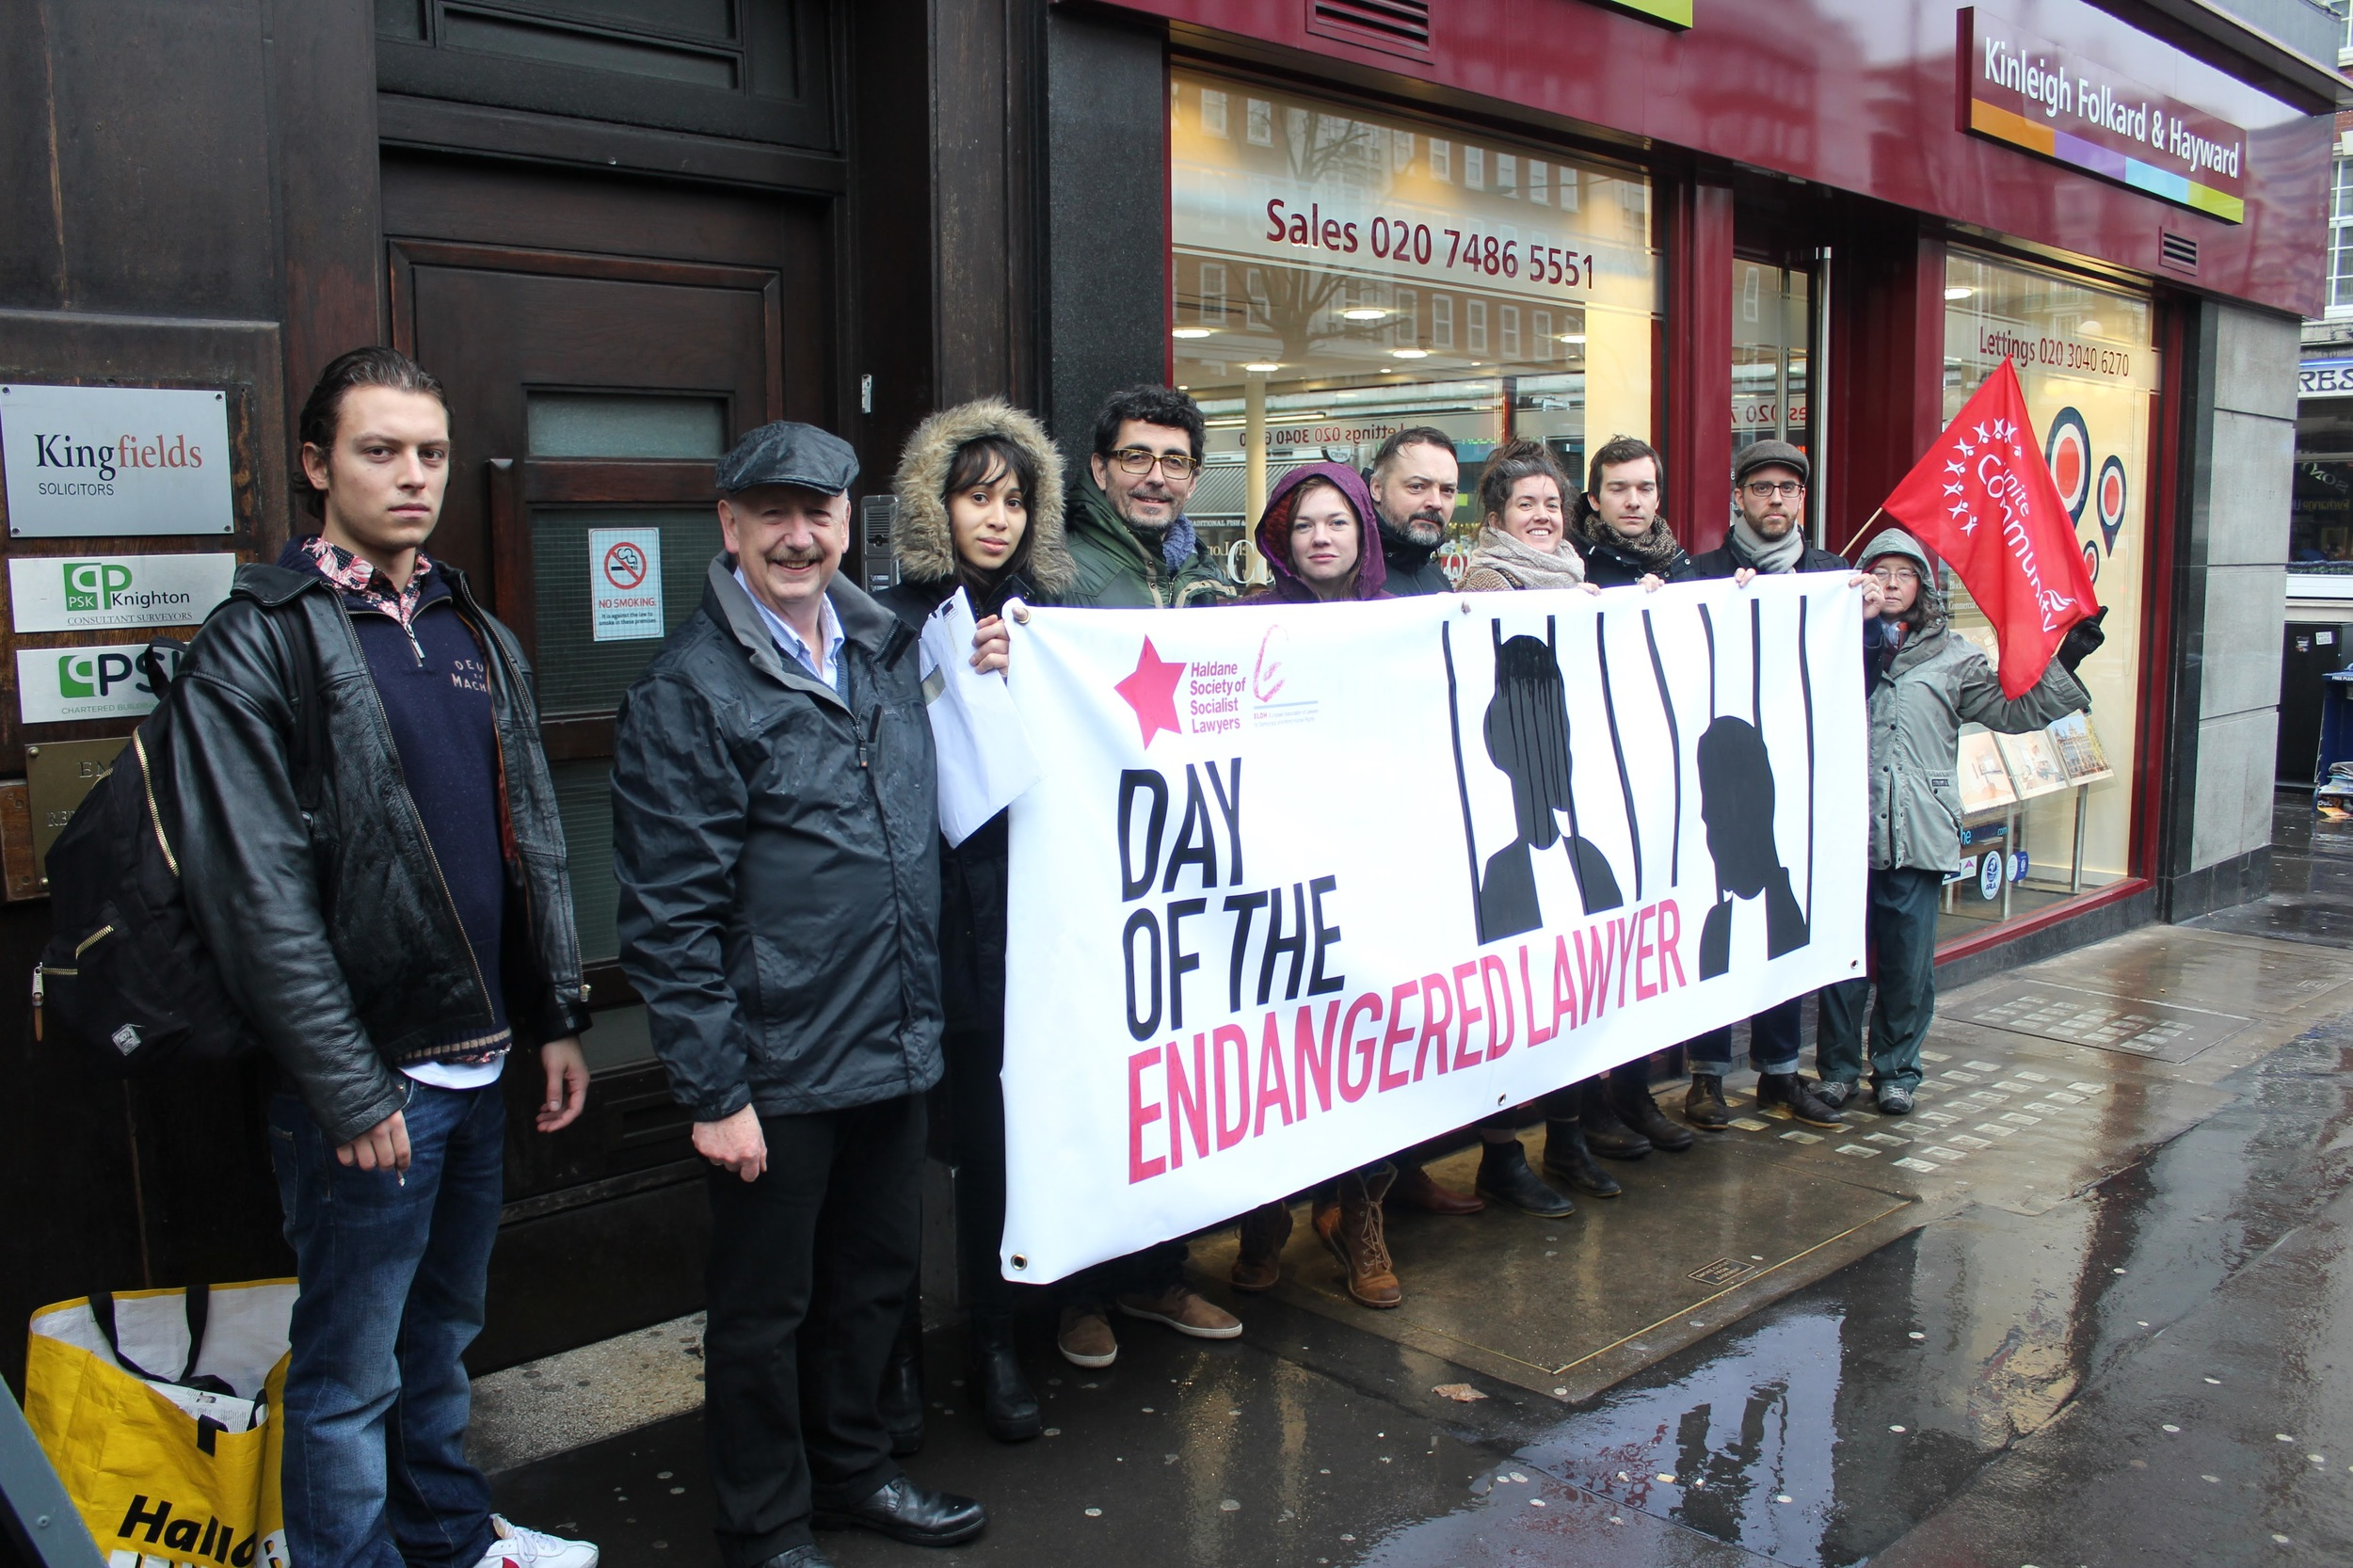 Protest in London 2